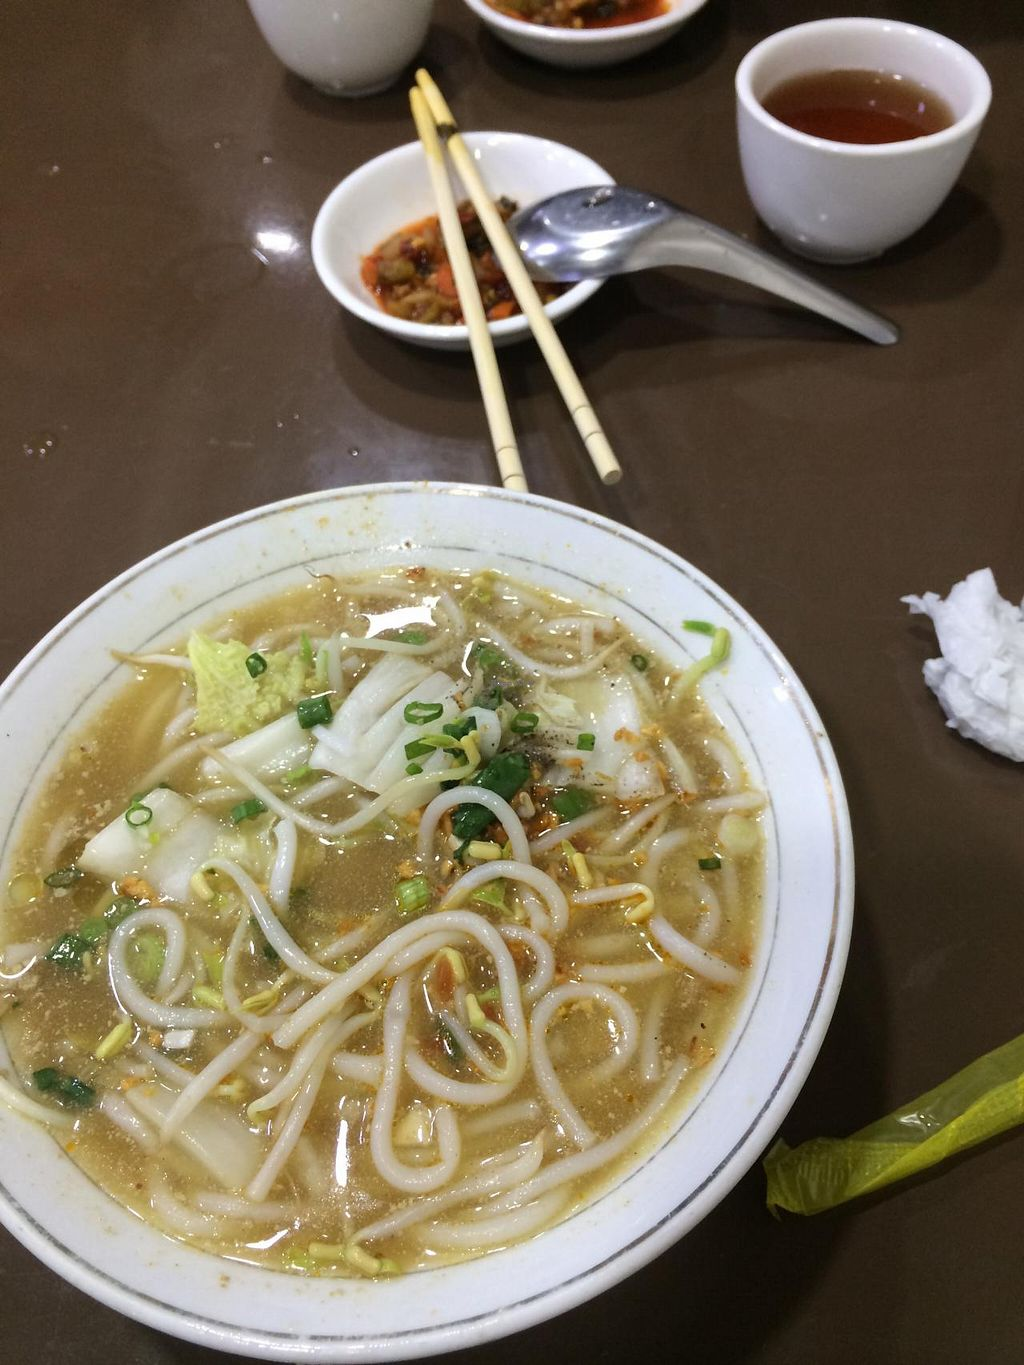 """Photo of 999 Shan Noodle Shop  by <a href=""""/members/profile/Plantpower"""">Plantpower</a> <br/>Vegan soup <br/> March 23, 2015  - <a href='/contact/abuse/image/55096/96625'>Report</a>"""